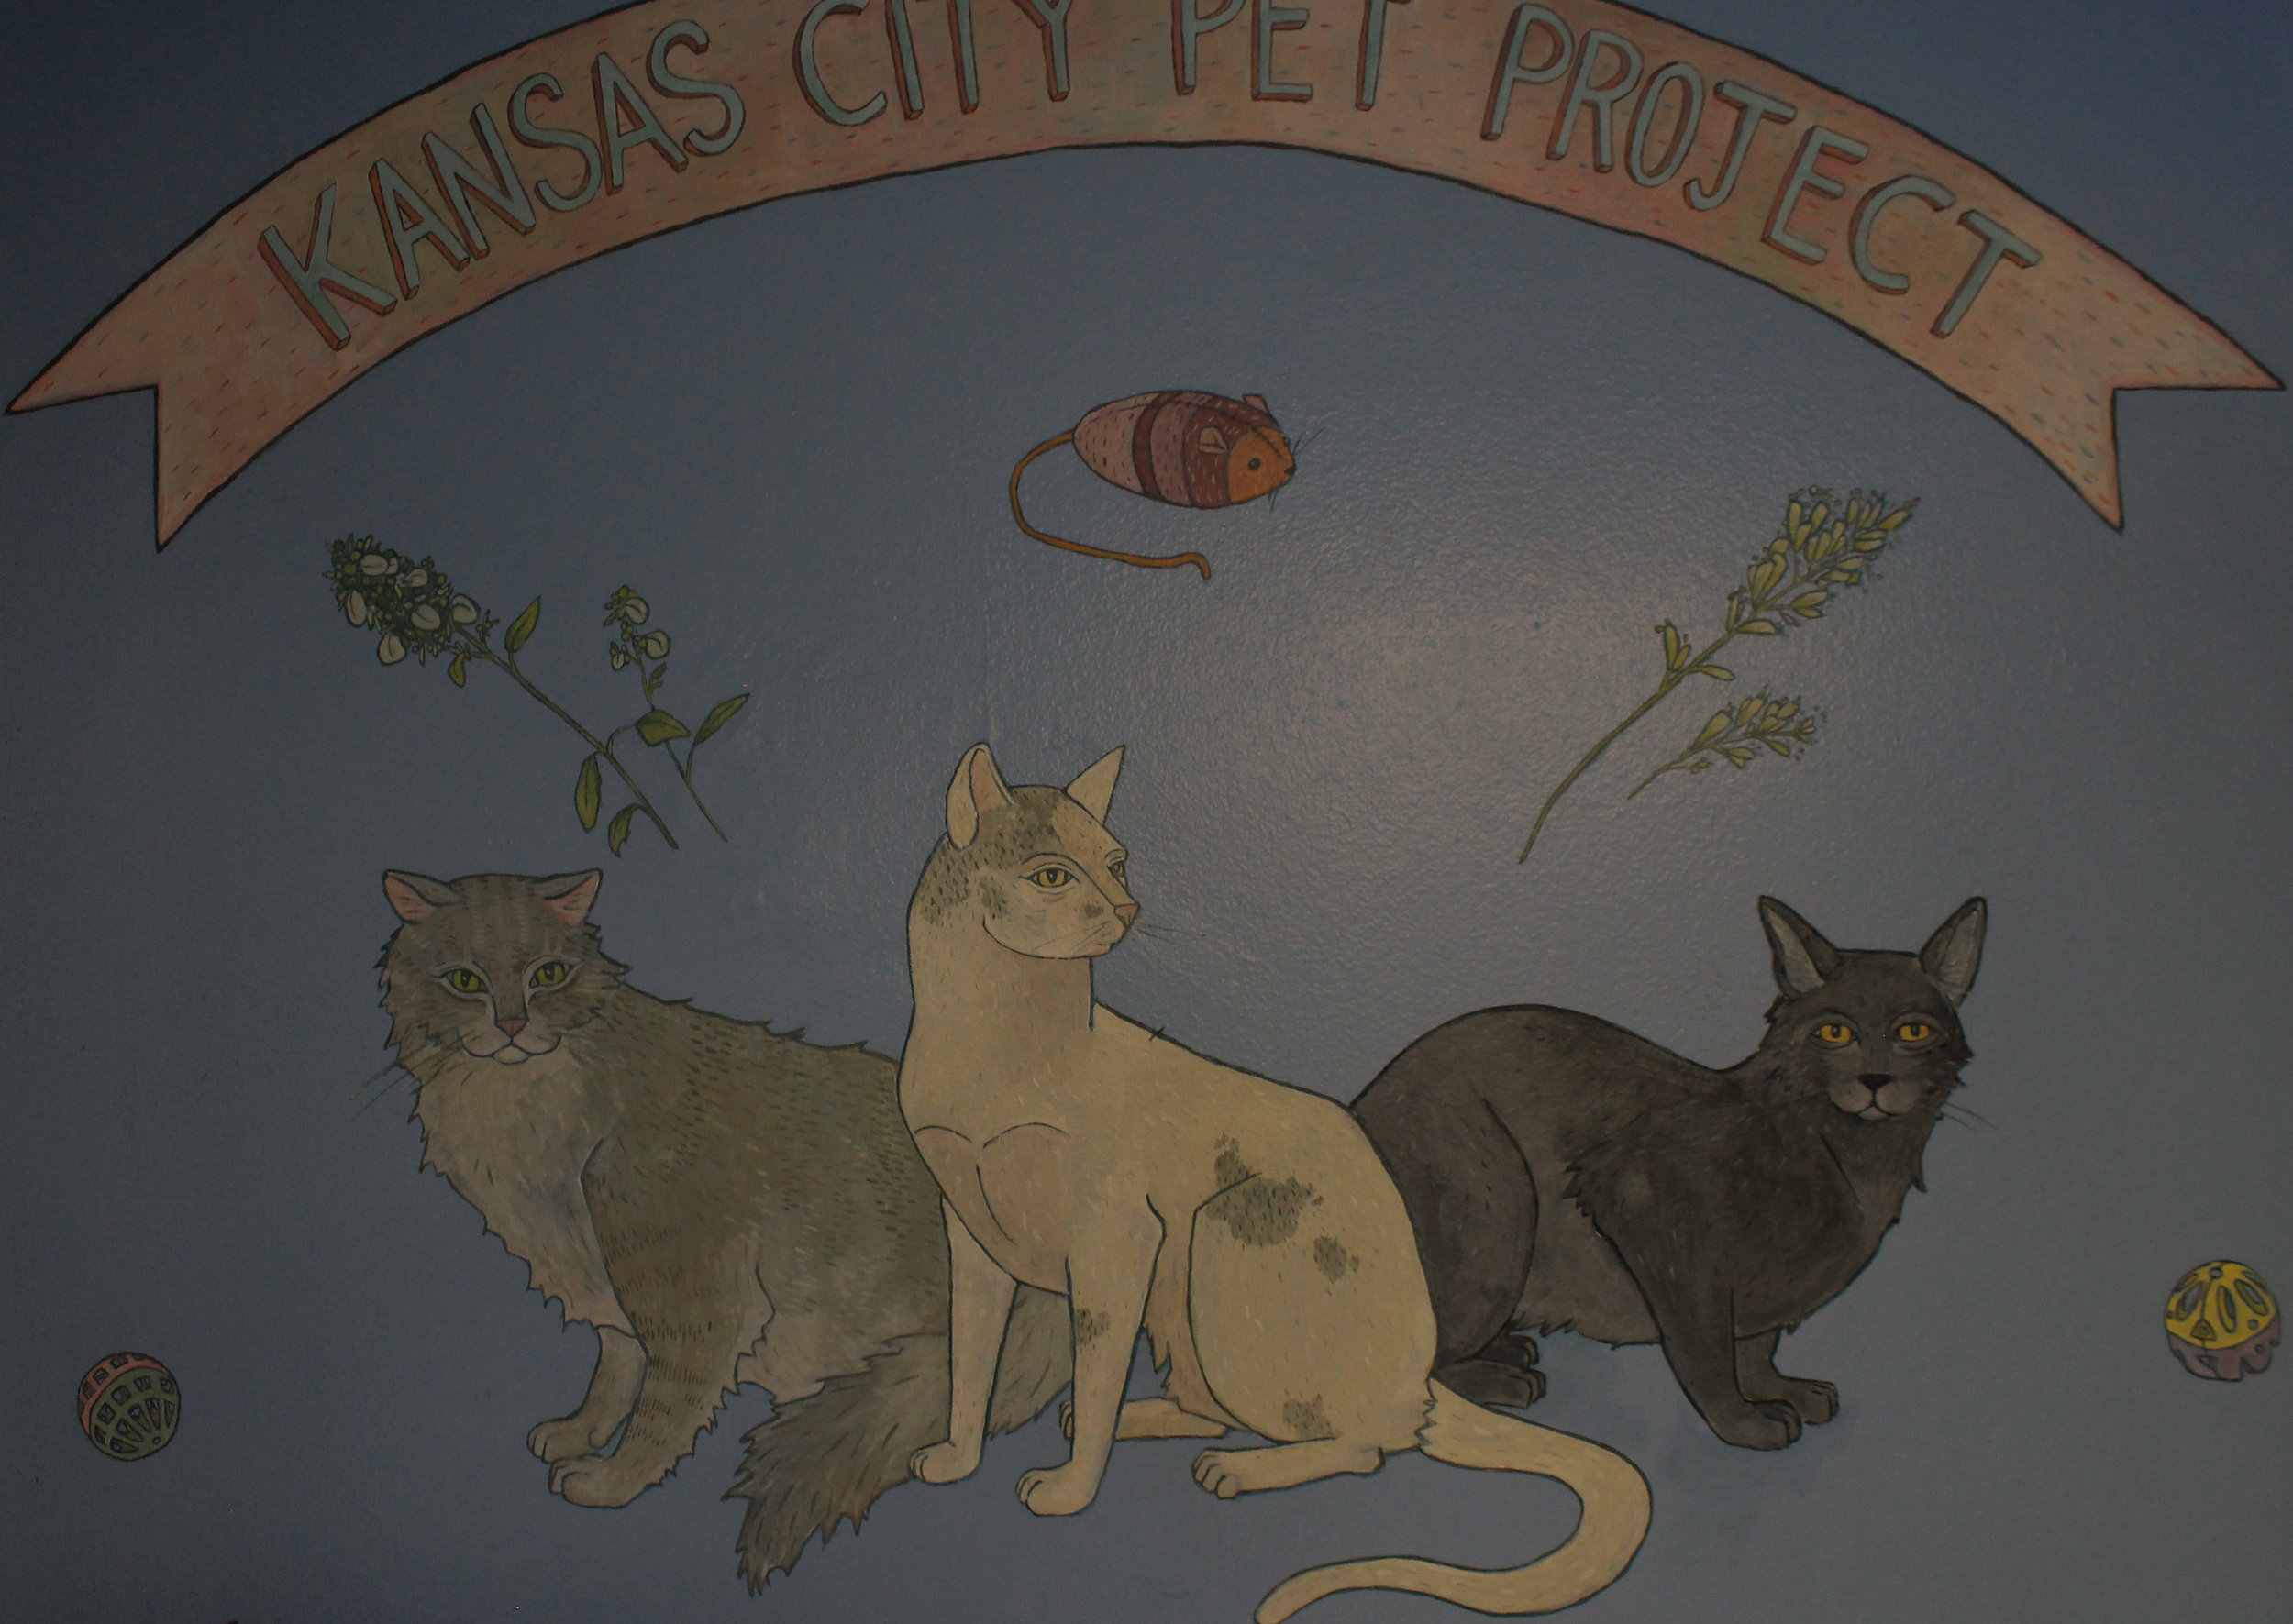 kansas city pet project adoptions mural (detail)  2017